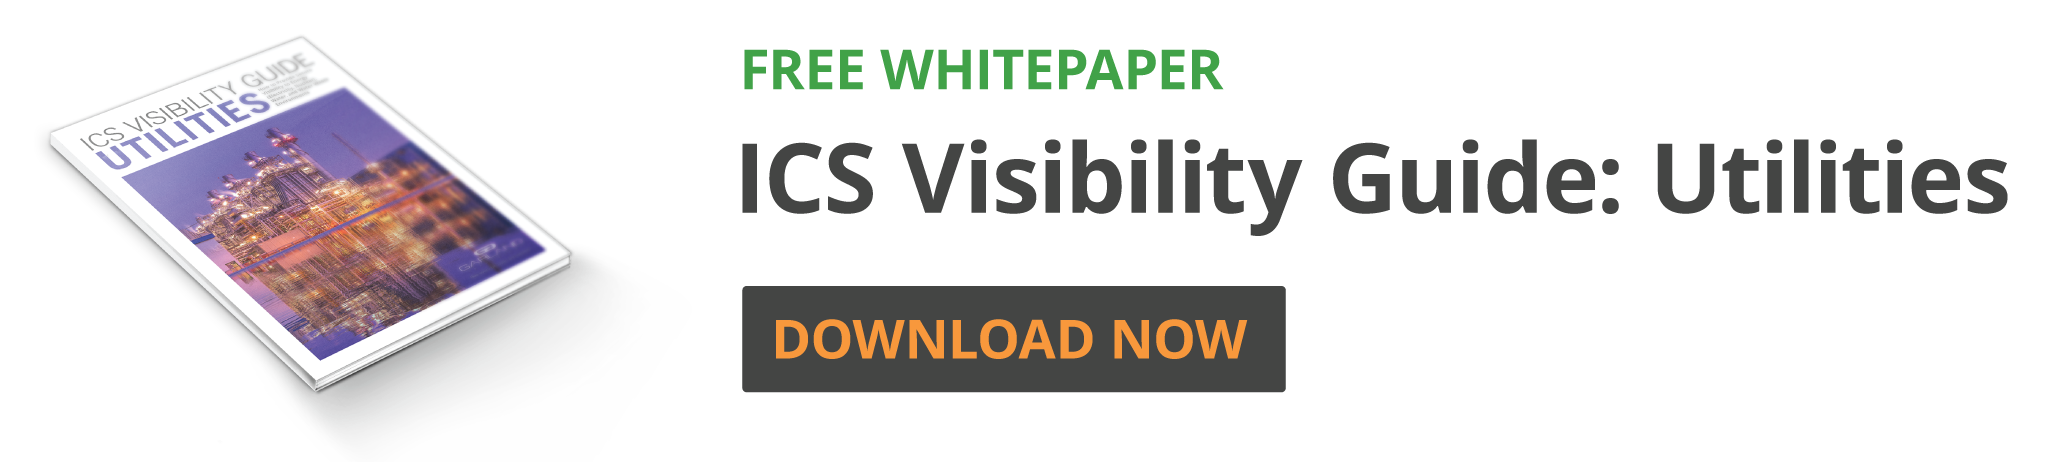 ICS Visibility Guide Utilities Free Whitepaper DOWNLOAD NOW!